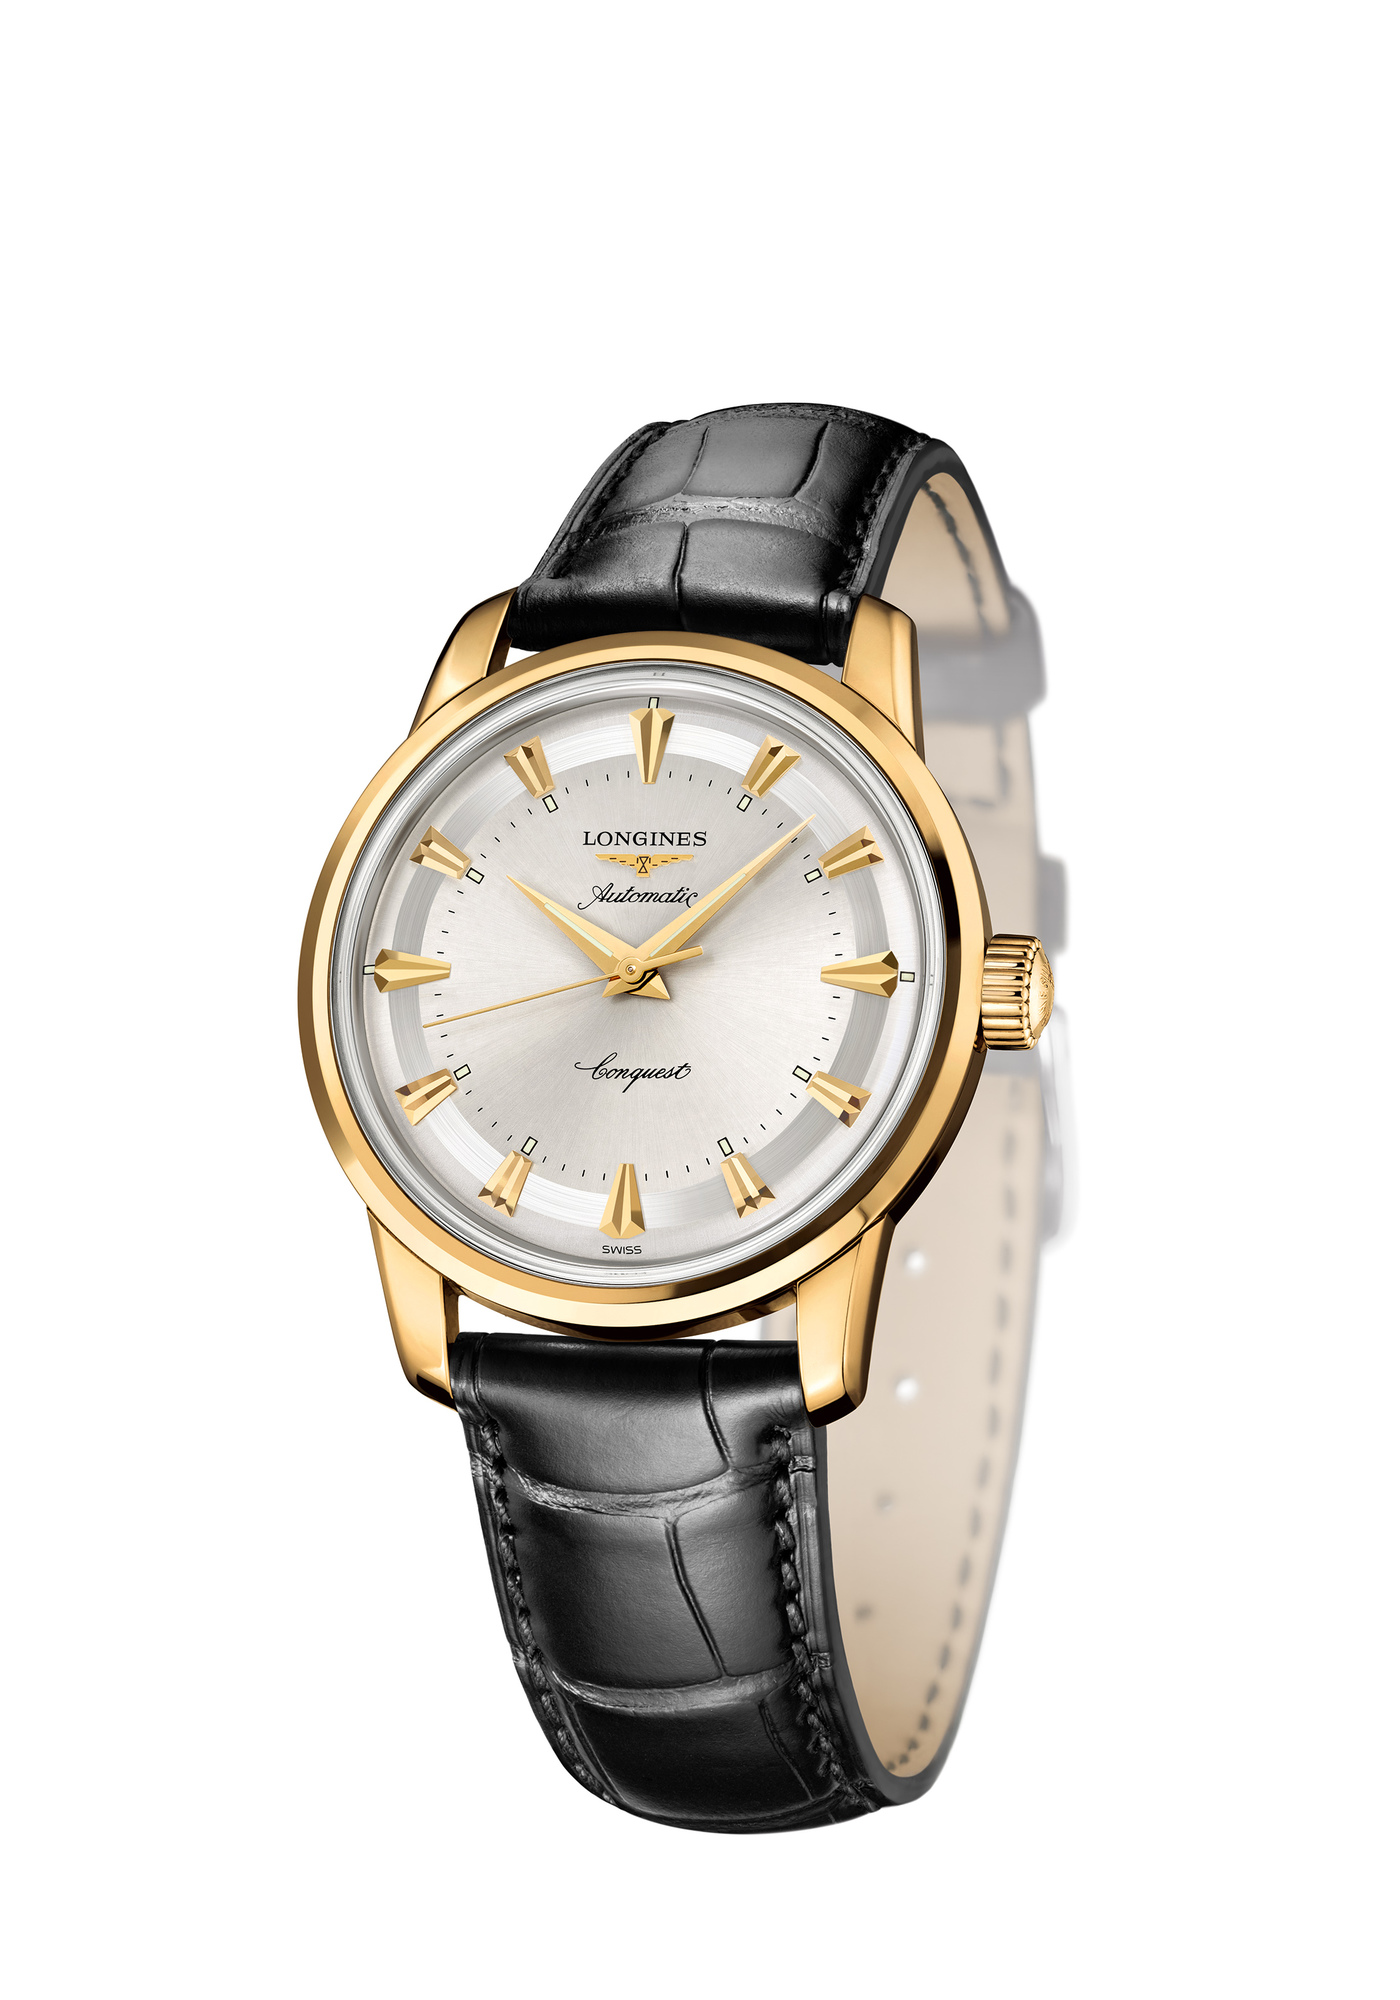 Longines Conquest Heritage 1954-2014 Watch 7